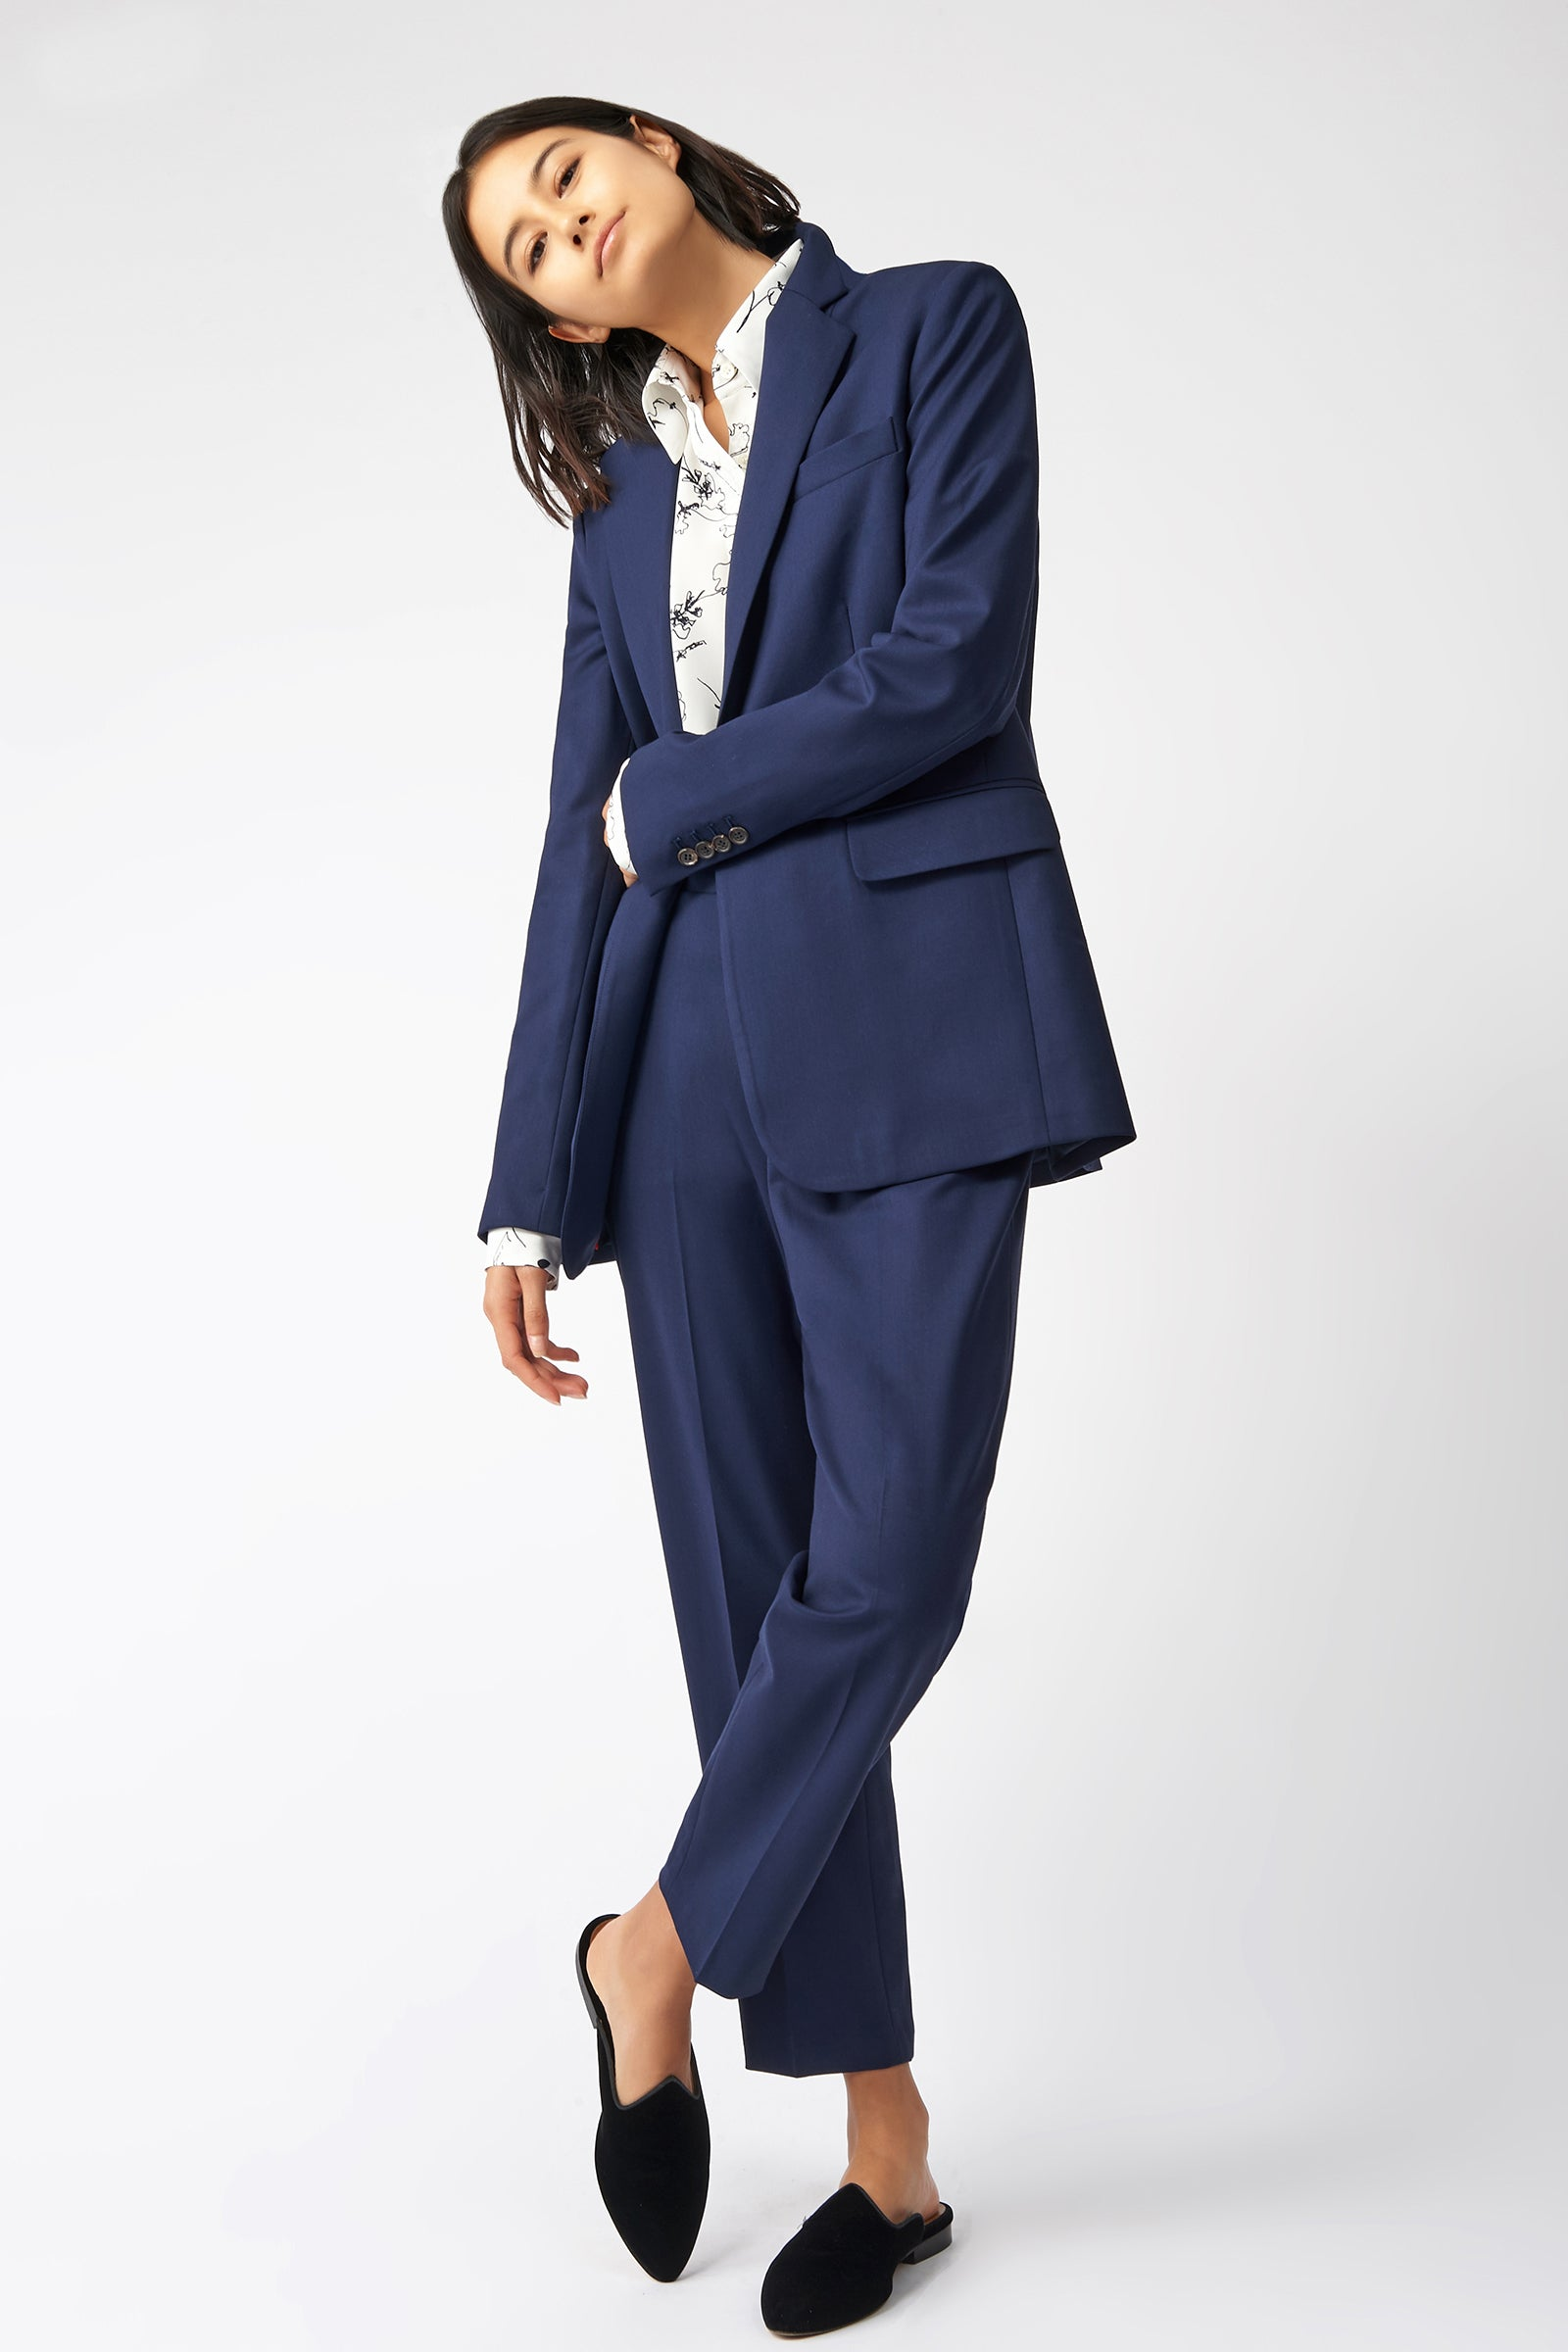 Kal Rieman Classic Notch Blazer in Navy on Model Full Front View